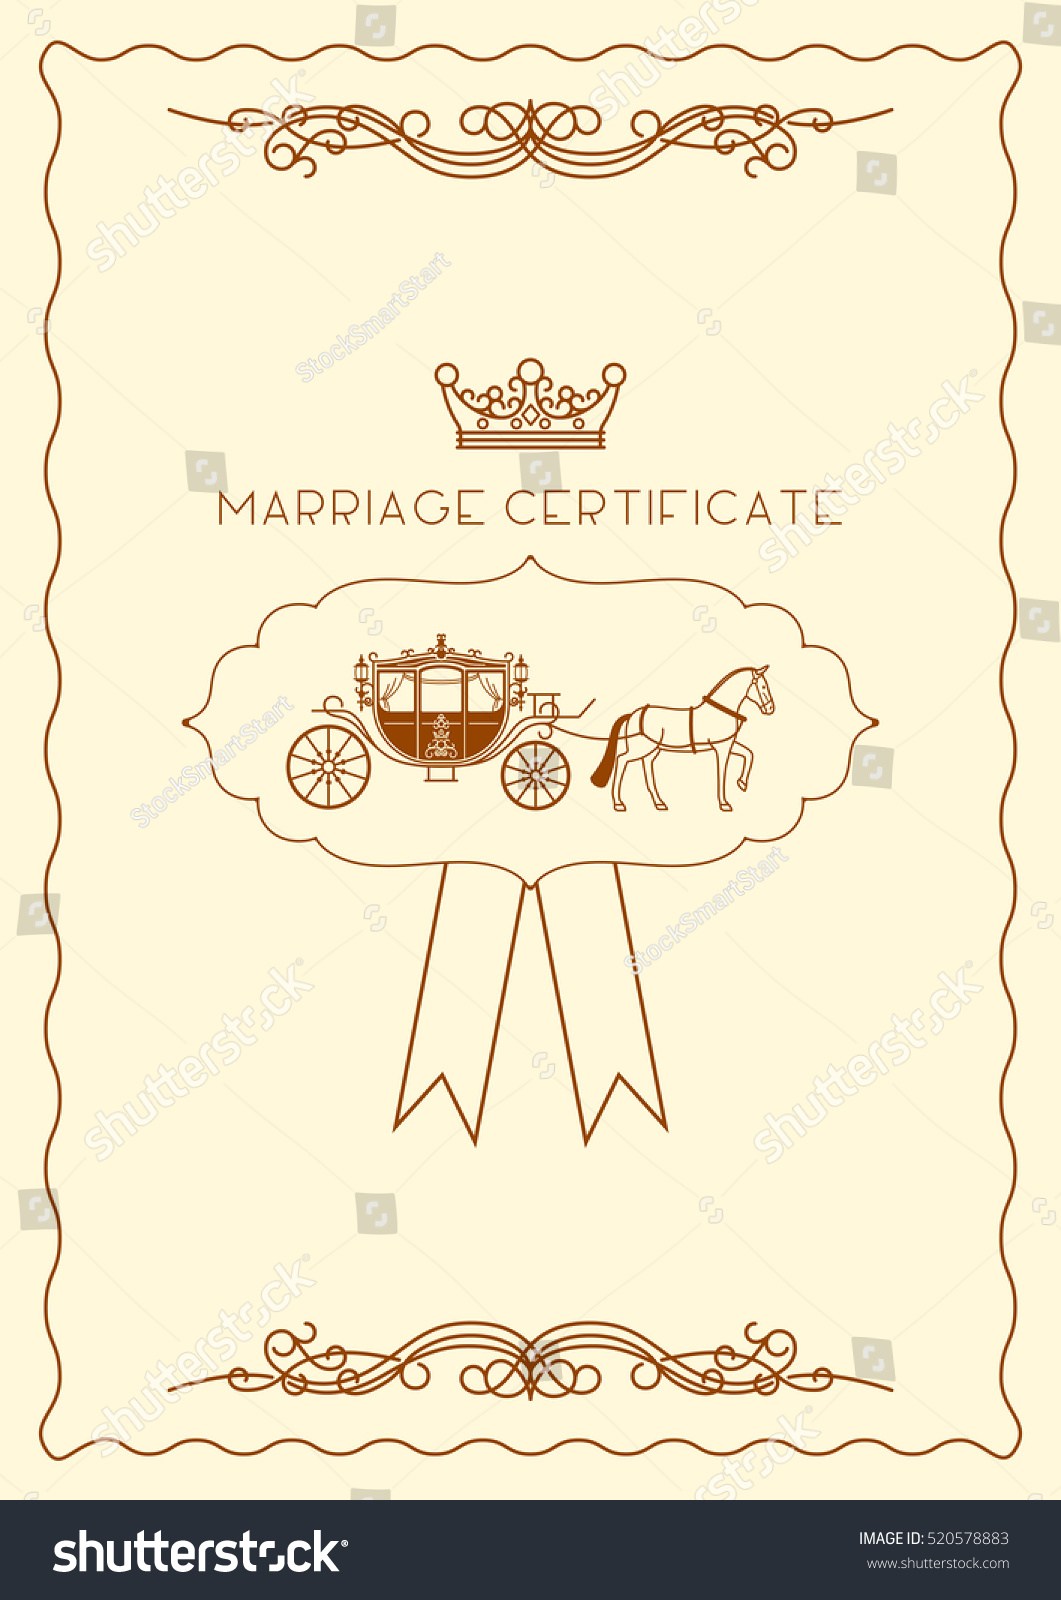 Marriage Certificate Document Template Design Vector Stock Vector